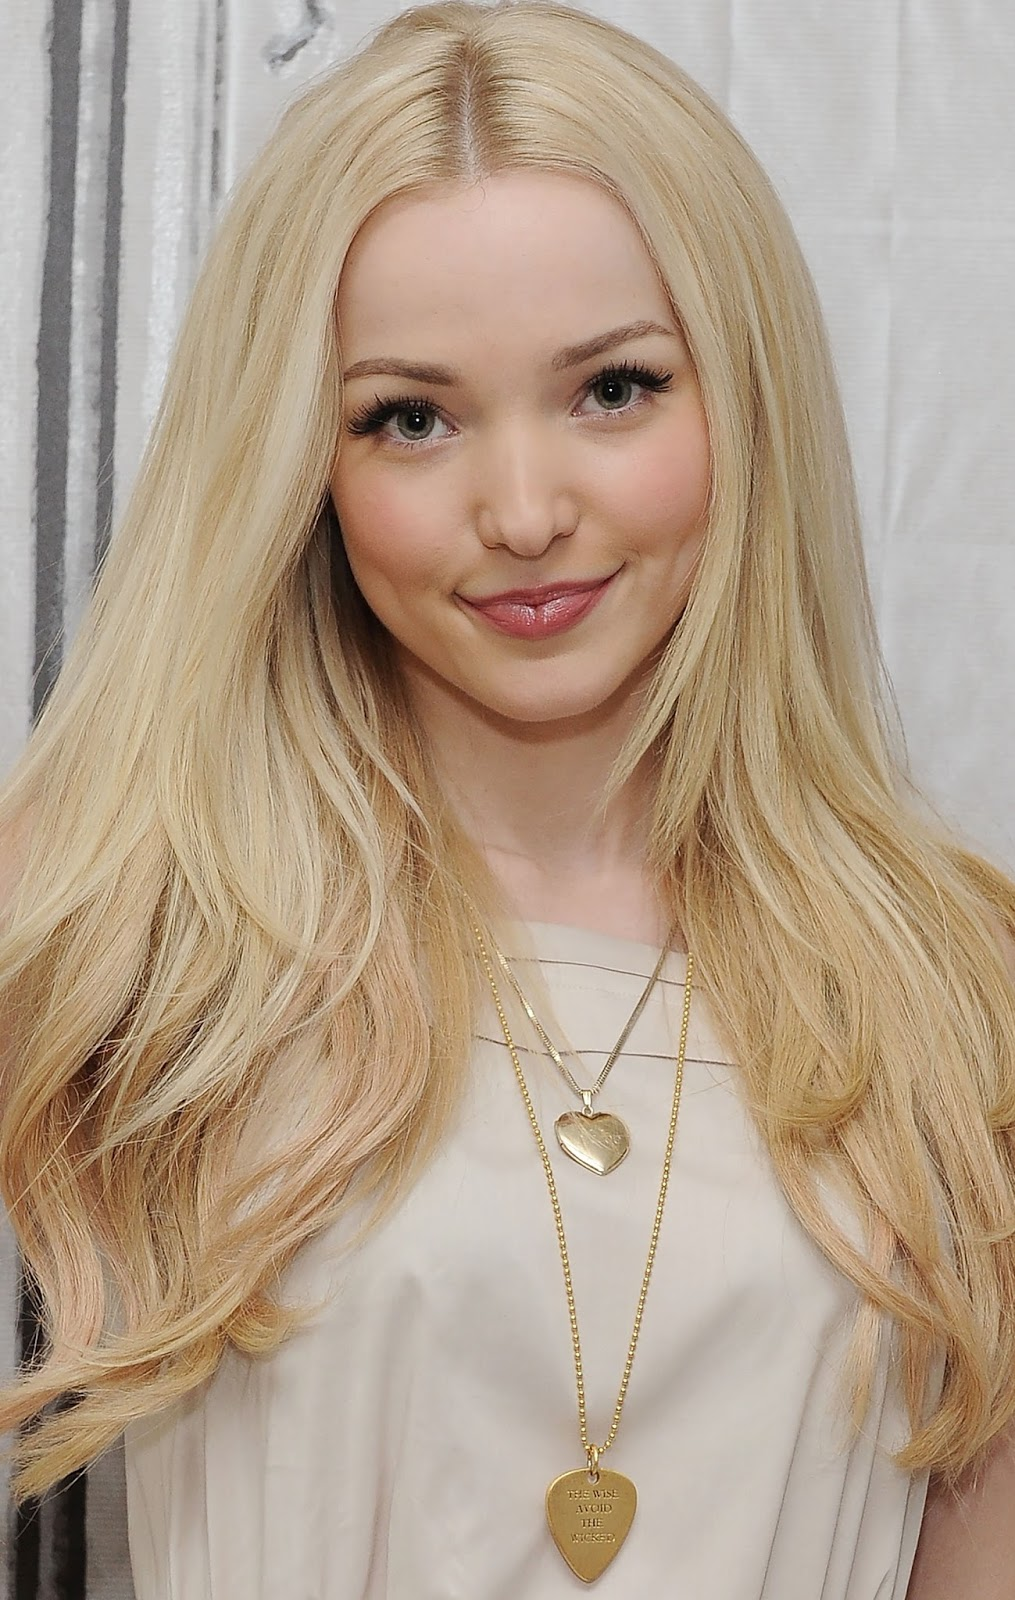 Dove Cameron nudes (96 photo) Topless, iCloud, cameltoe